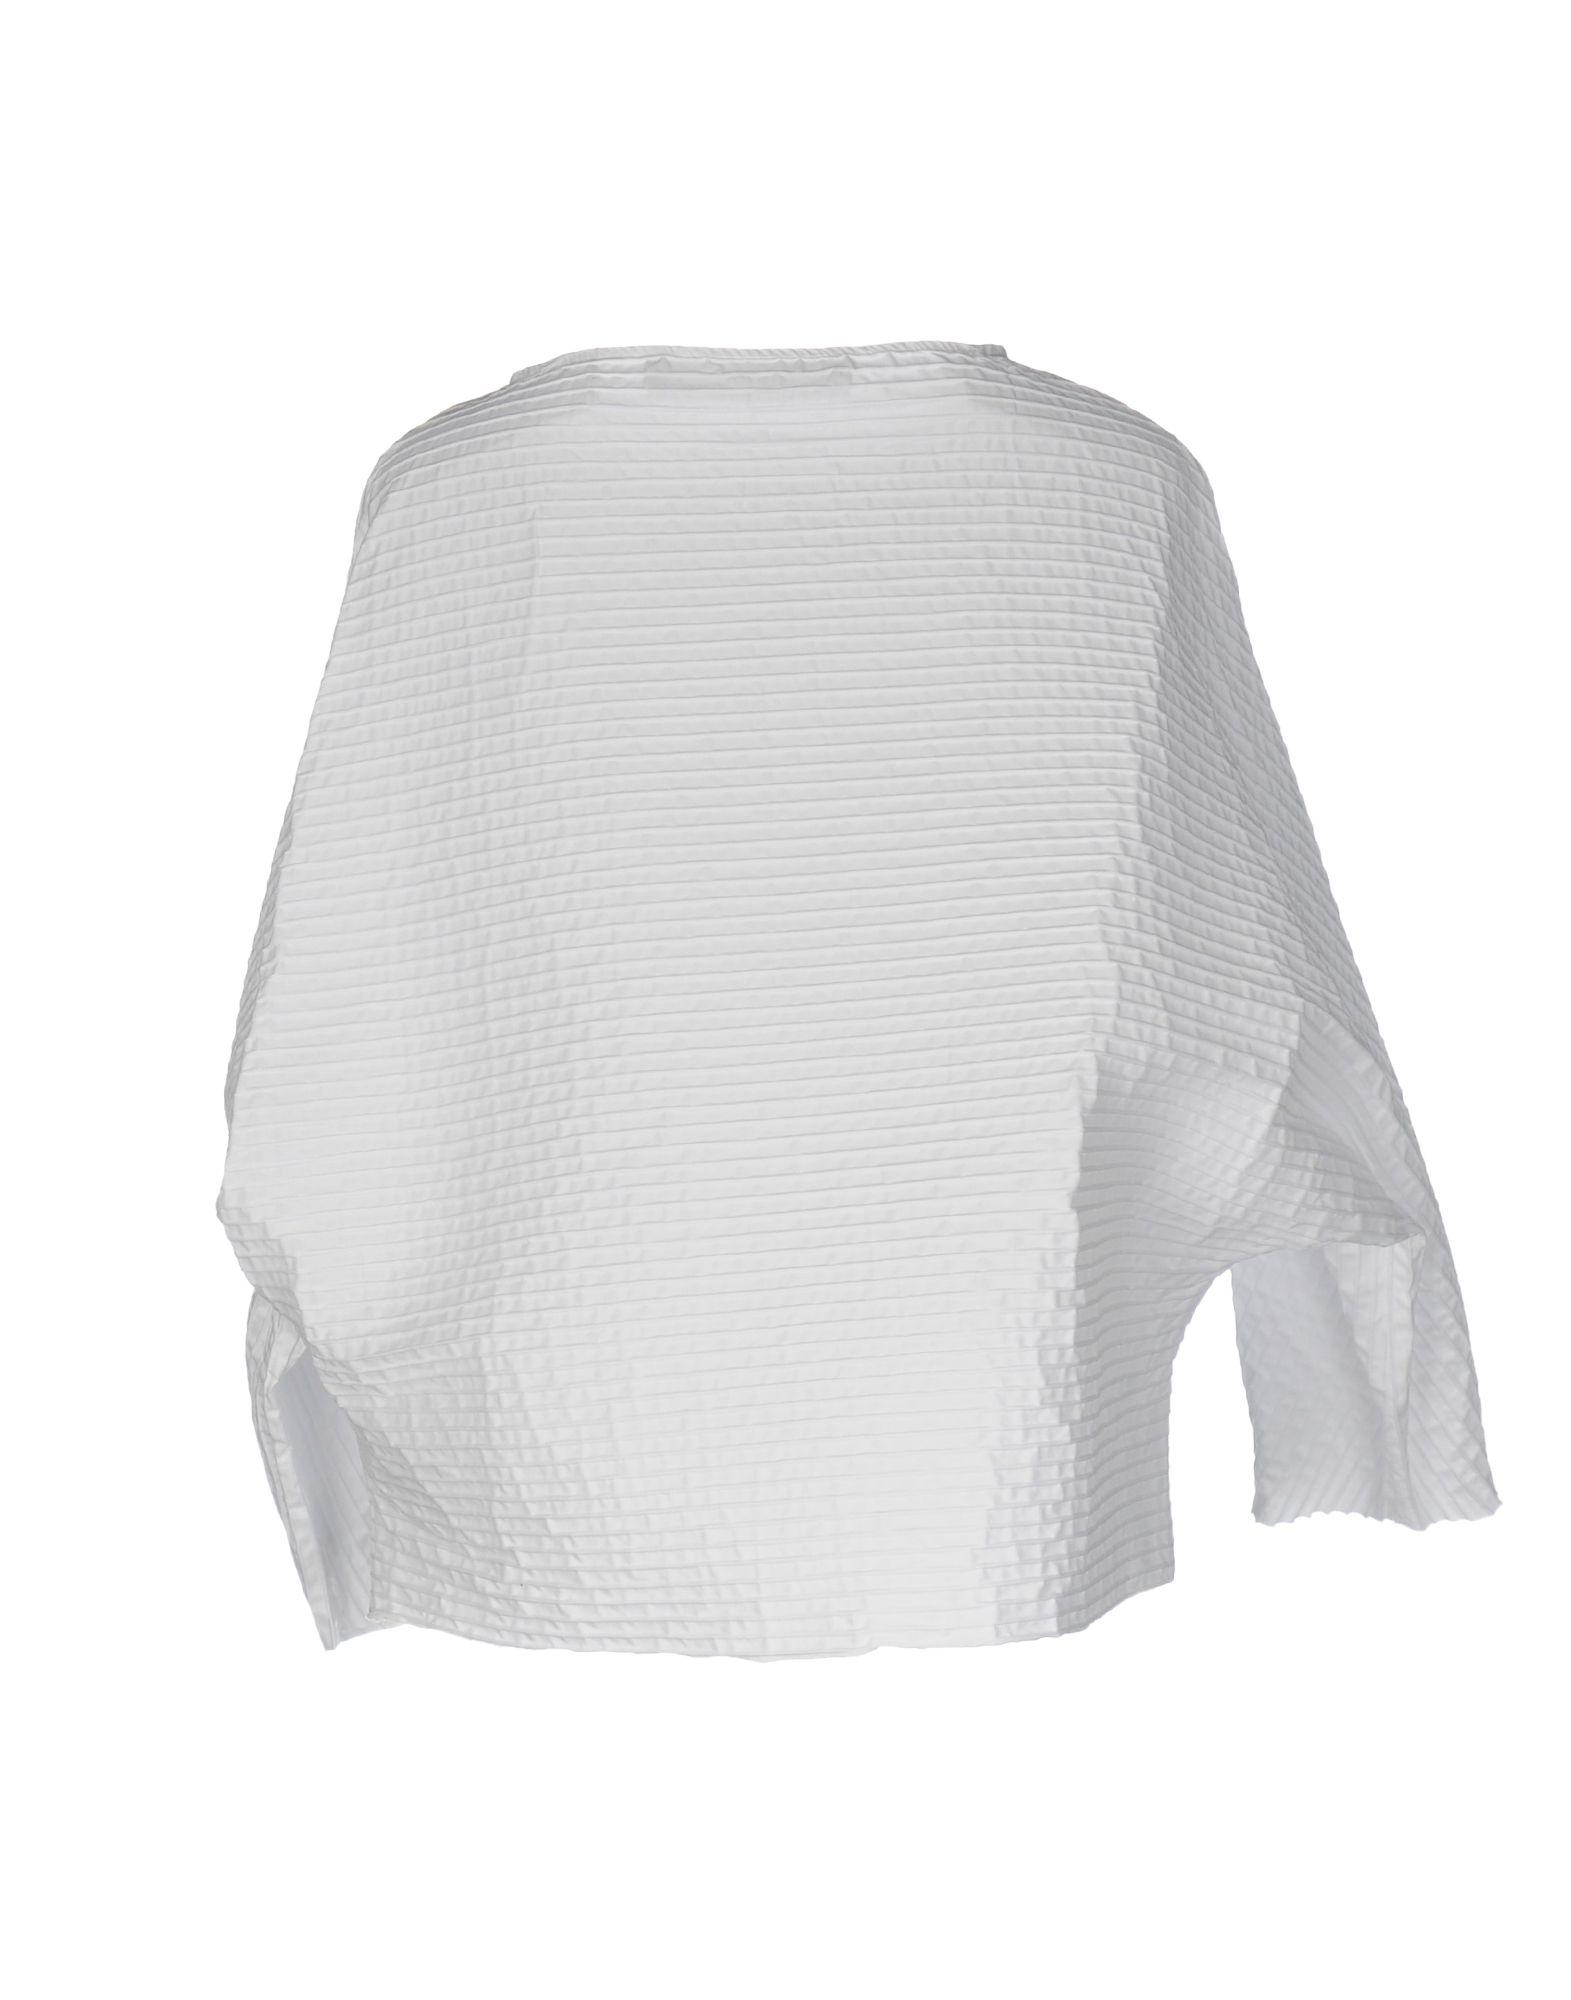 SHIRTS - Blouses Federica Tosi Buy Online With Paypal Many Kinds Of txALRqh6K